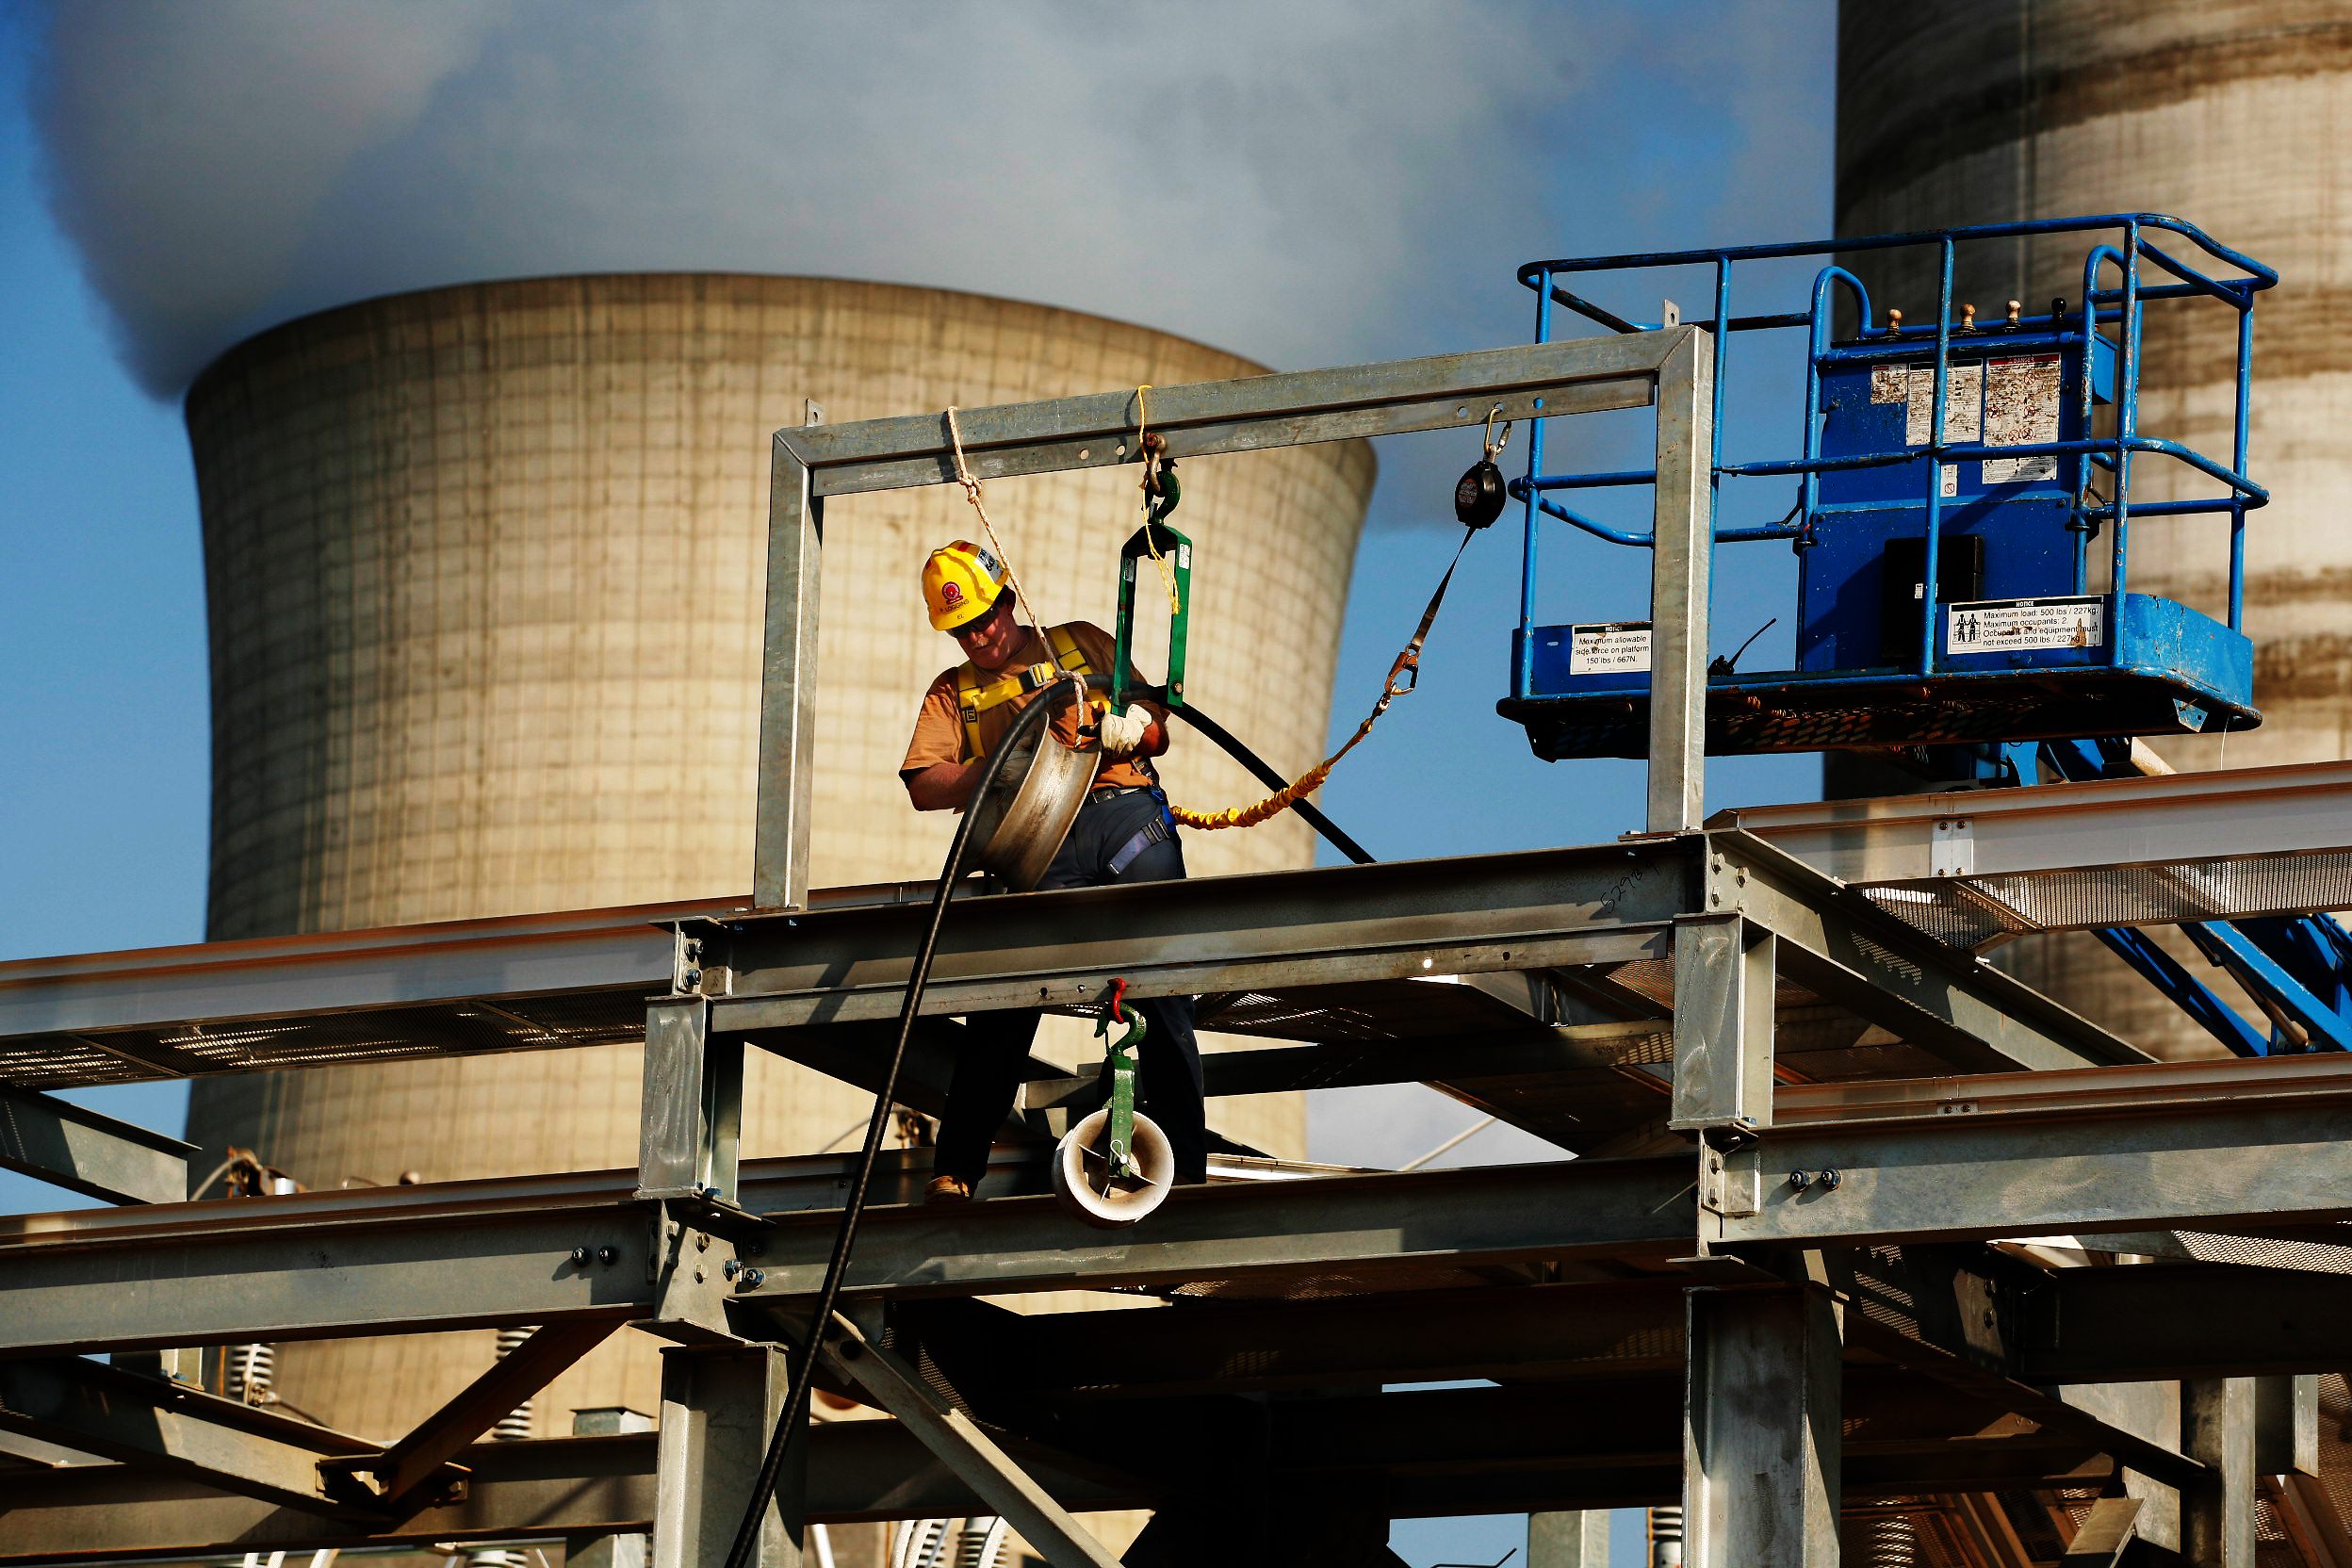 worker-cooltower_9373